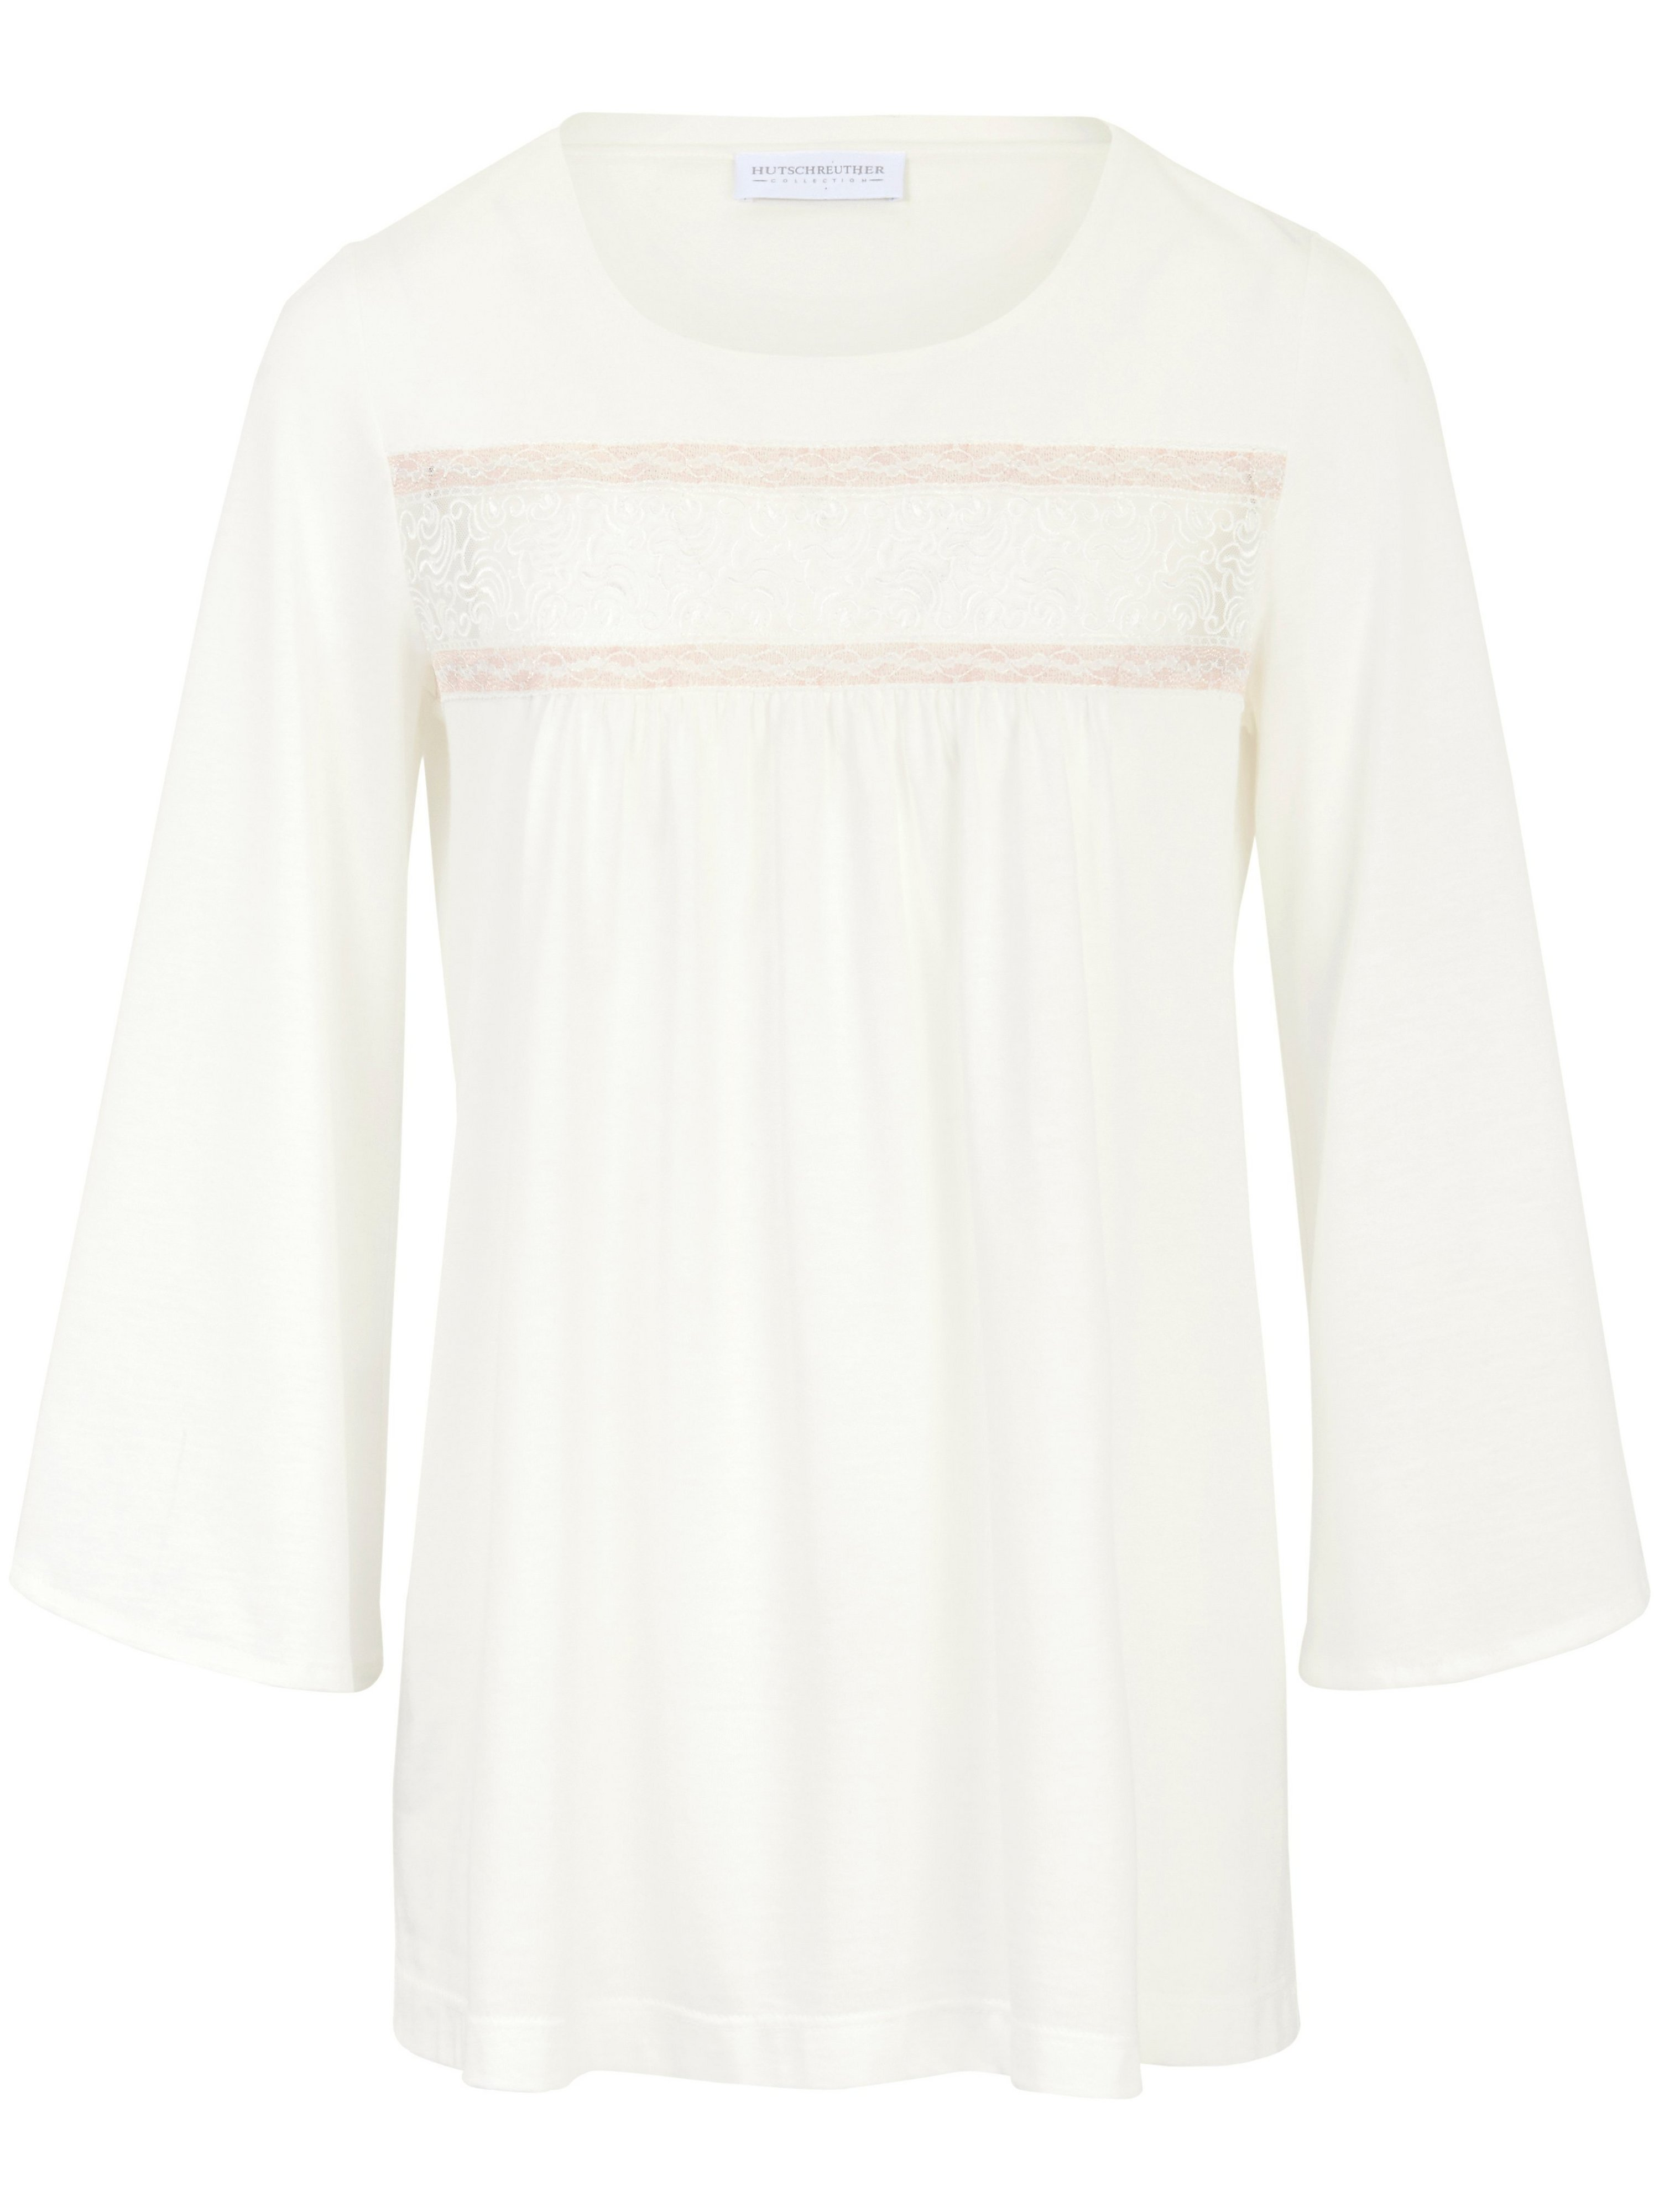 Le pyjama single jersey, ligne ample  Hutschreuther beige taille 48